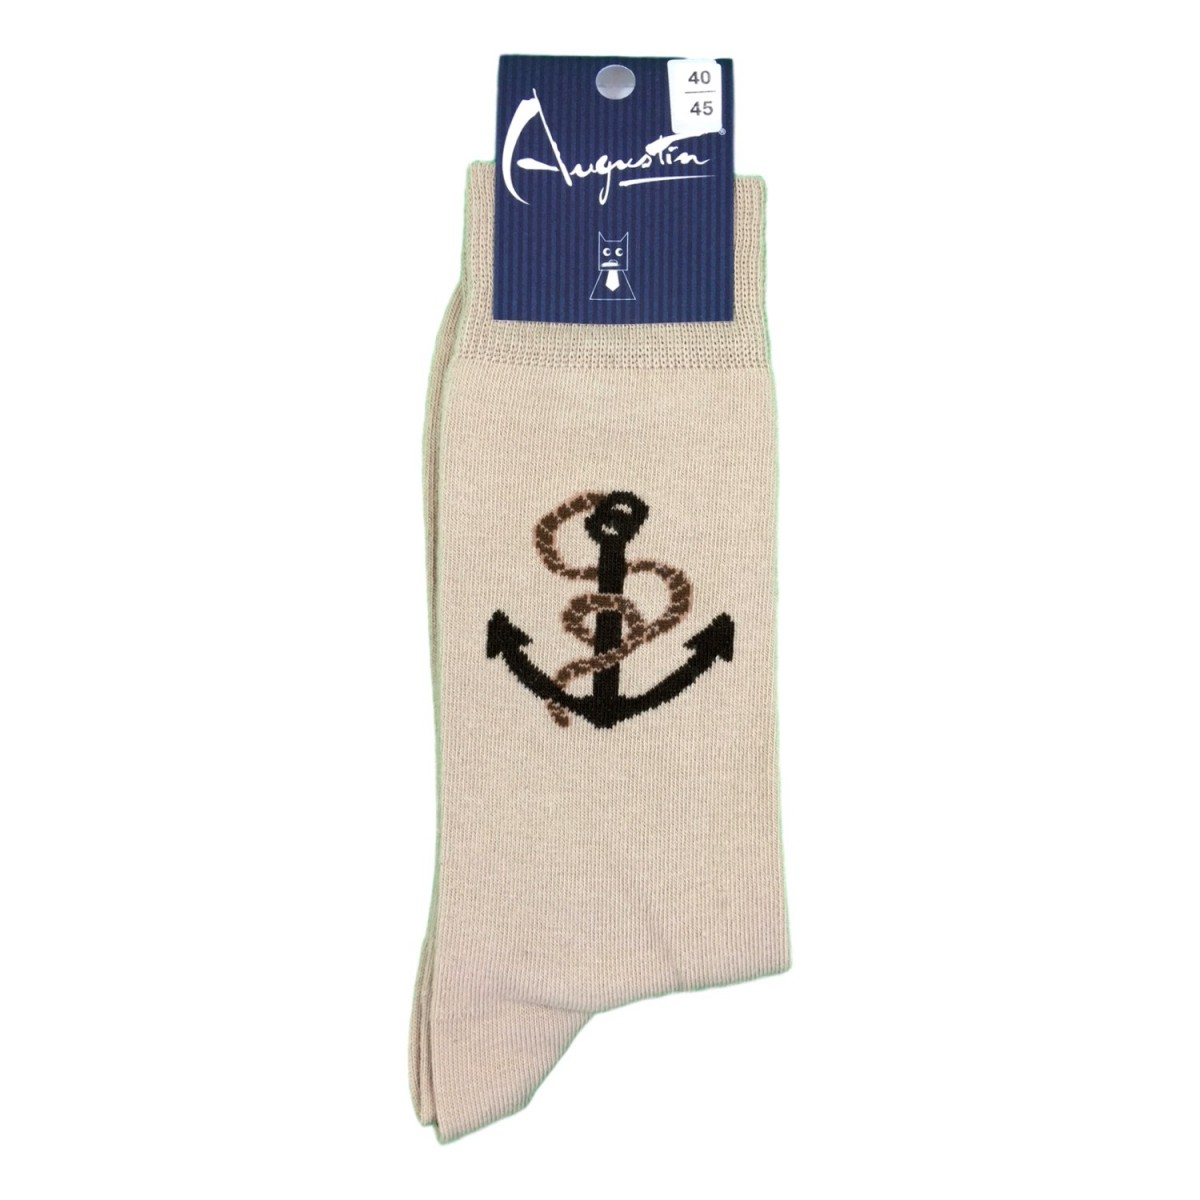 https://www.boutique-augustin.com/1285-thickbox/anchor-and-rope-socks.jpg